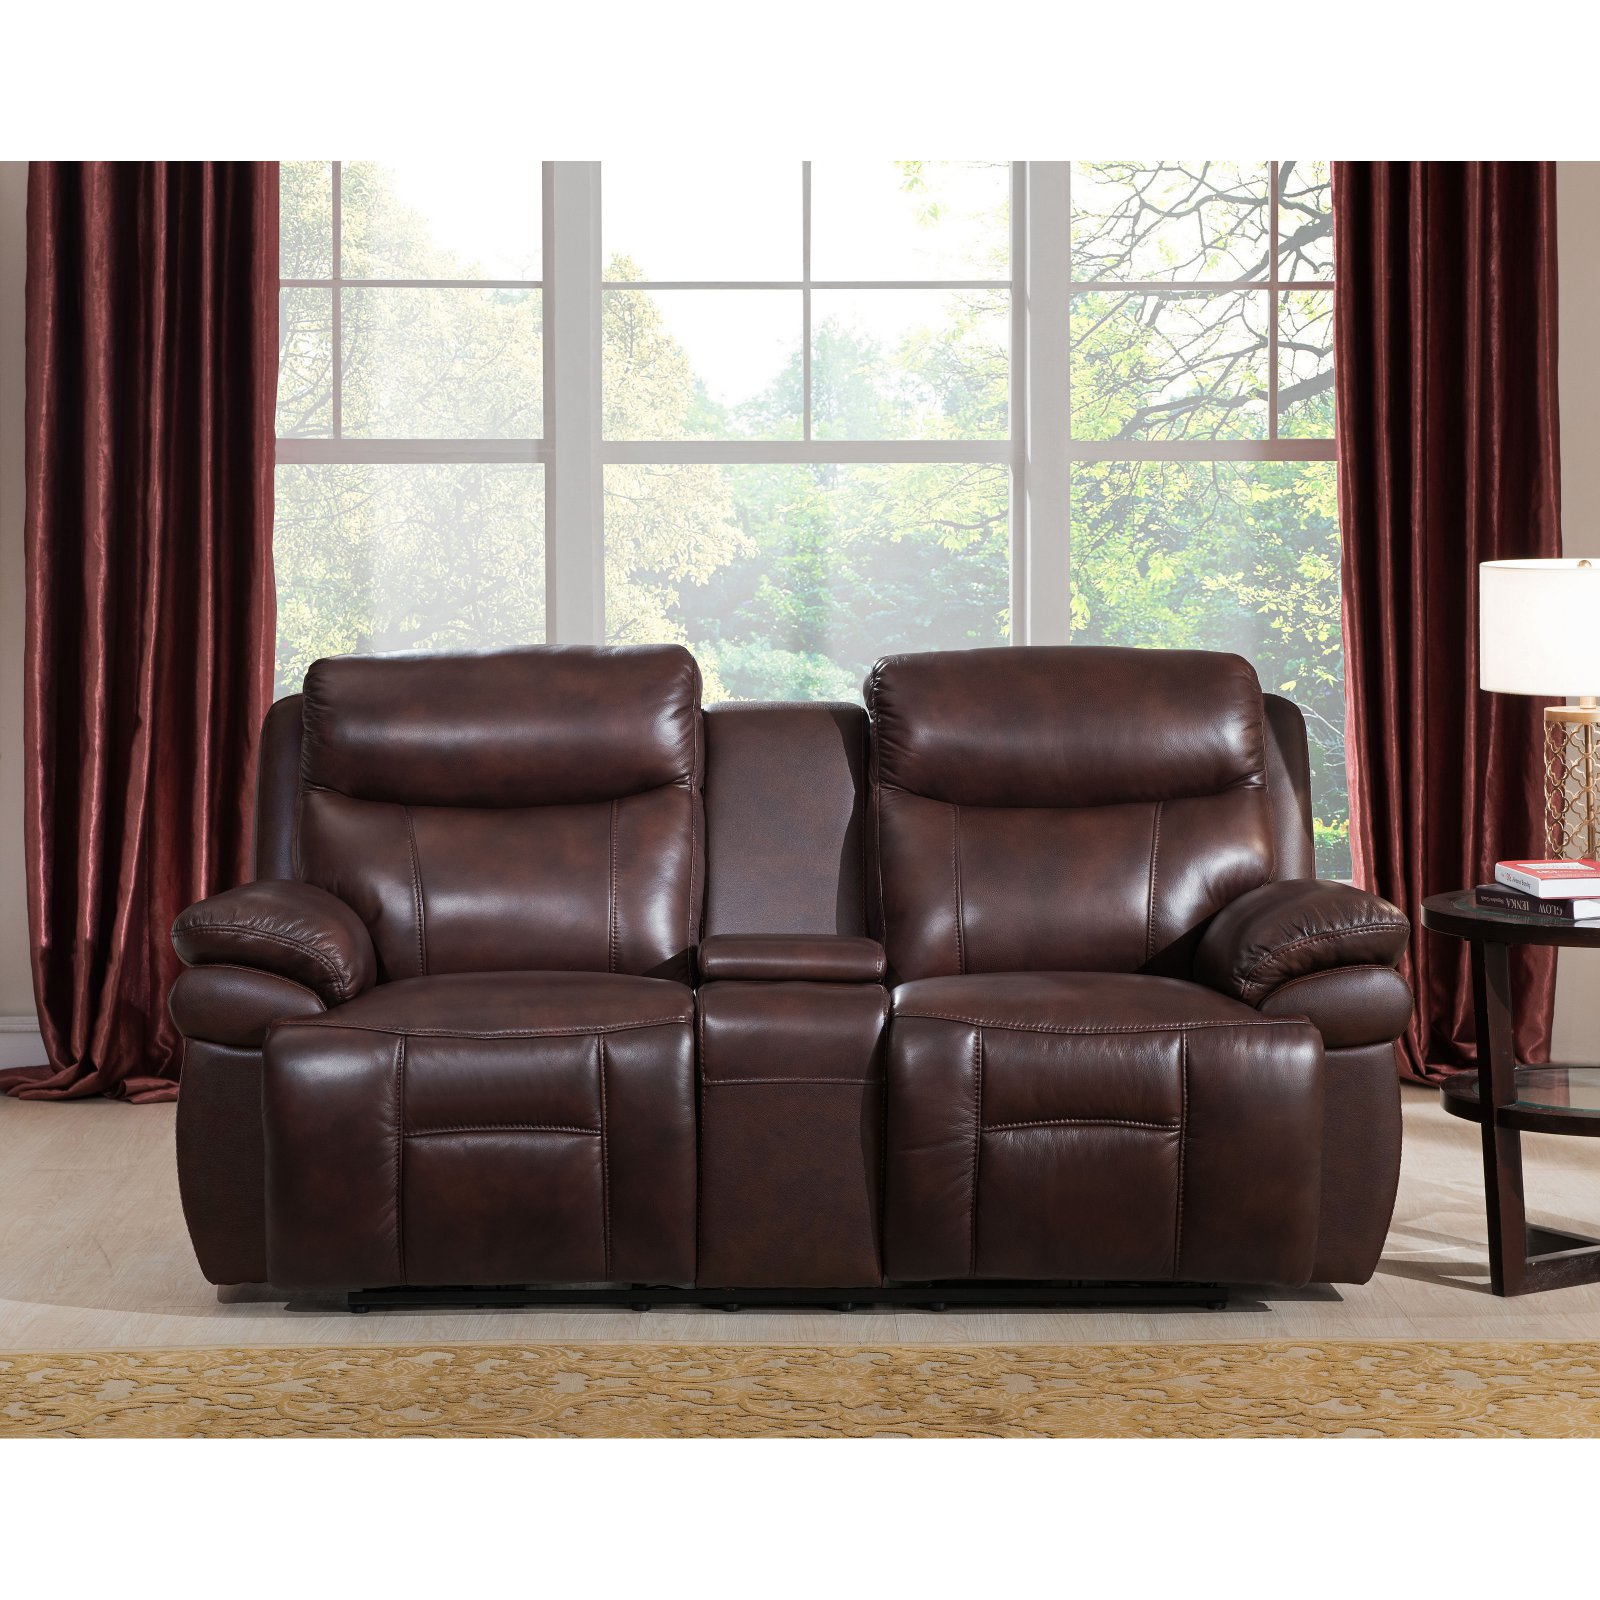 Amax Leather Summerlands II Top Grain Leather Power Reclining Loveseat